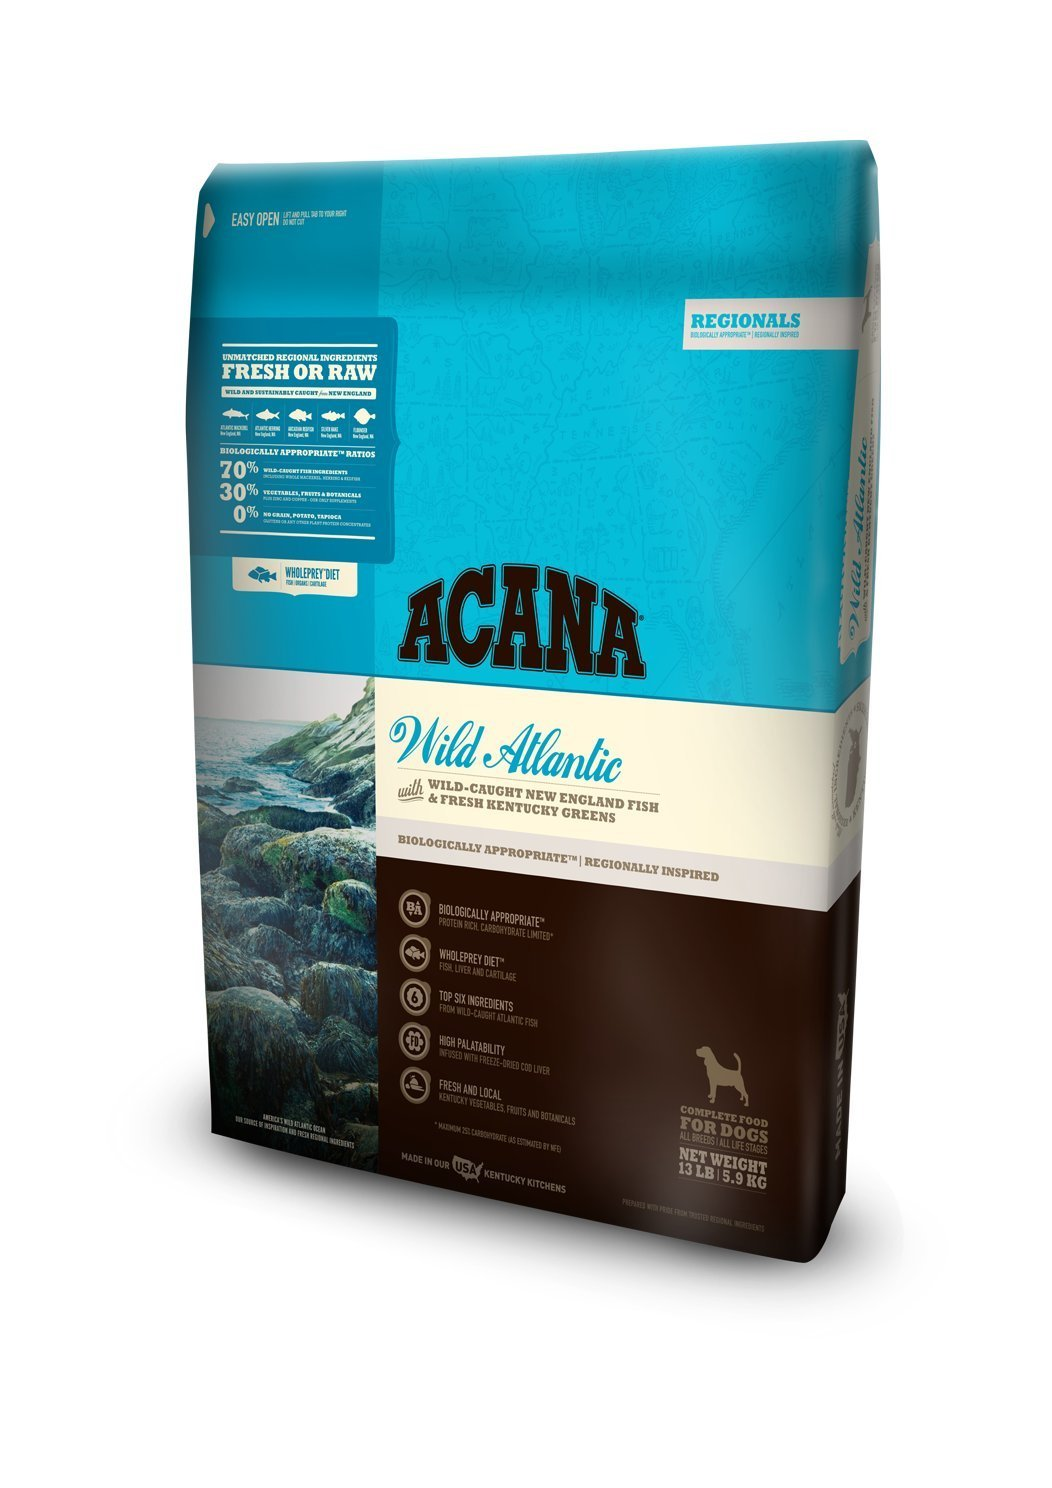 Acana Regionals Wild Atlantic for Dogs - The Ultimate Healthy Dog Life: Acana Dog Food Reviews